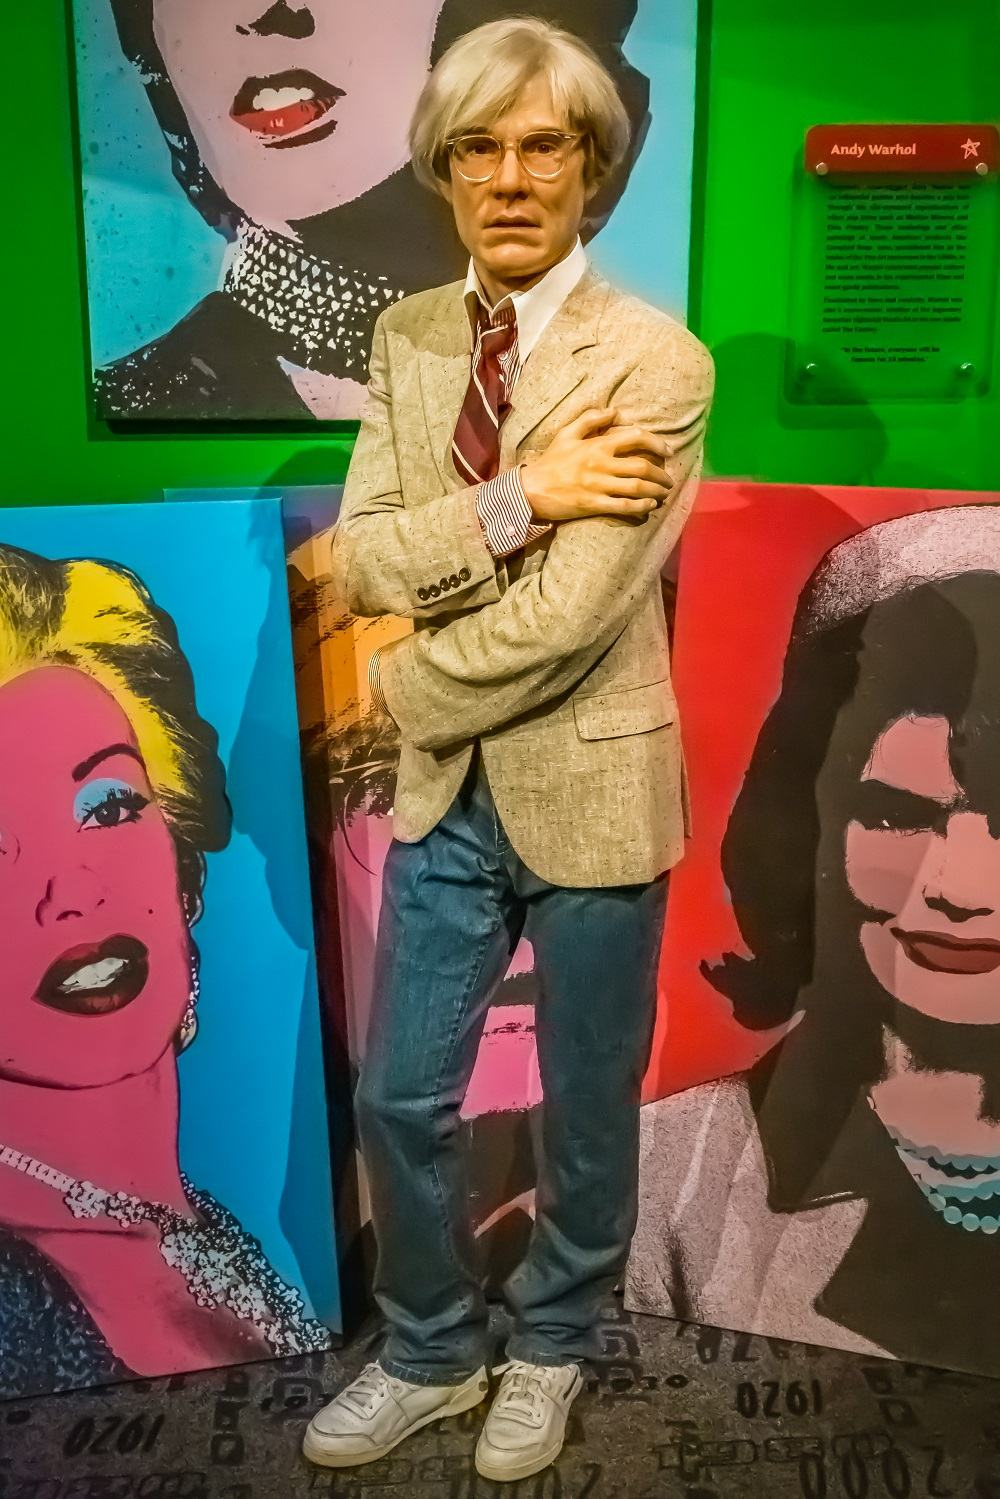 NEW YORK CITY, USA – JULE 13, 2013: Andy Warhol wax figure at Madame Tussauds wax museum in Times Square in New York.